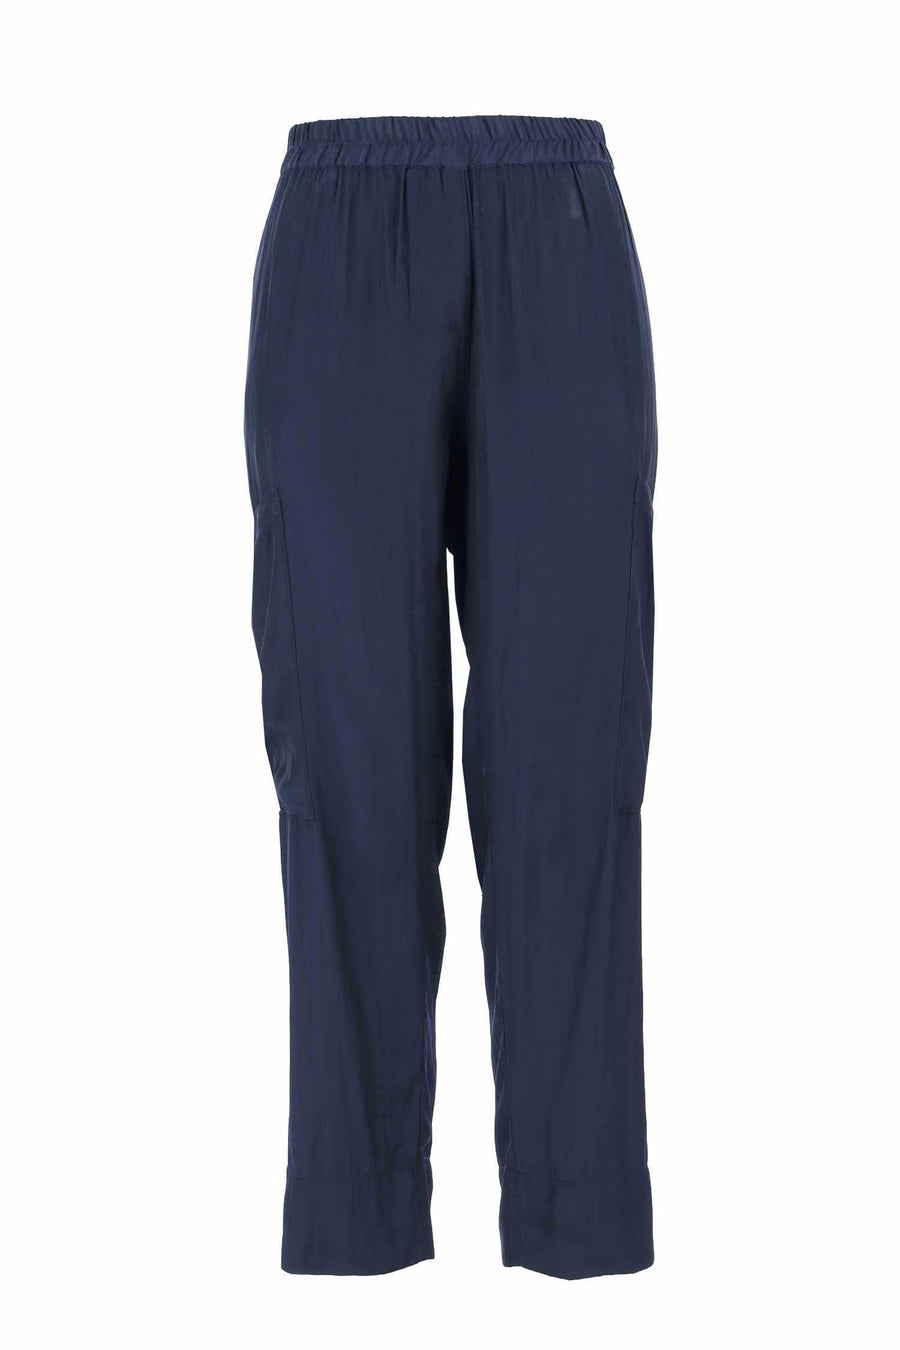 Shop Online Soft Cargo in French Navy by Mela Purdie  Frockaholics Bottoms